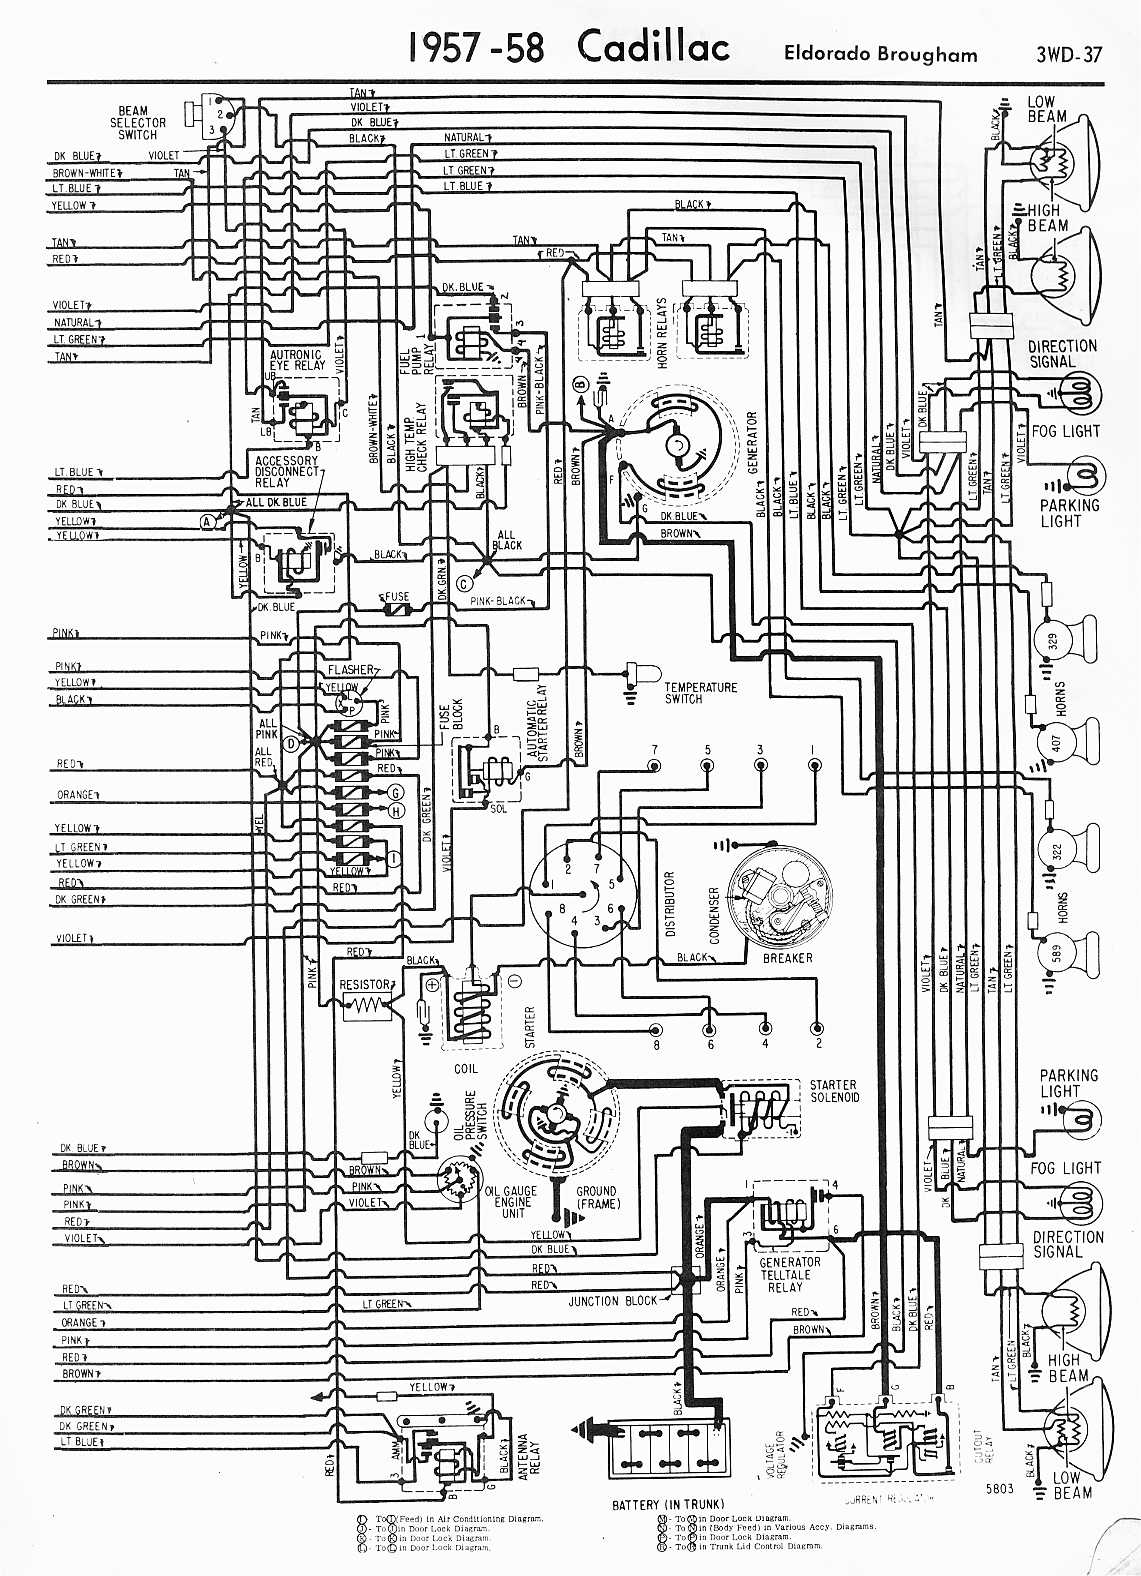 Cadillac Wiring Diagrams 1957 1965 Ac Power Adapter Diagram Get Free Image About 58 Eldorado Brougham Right